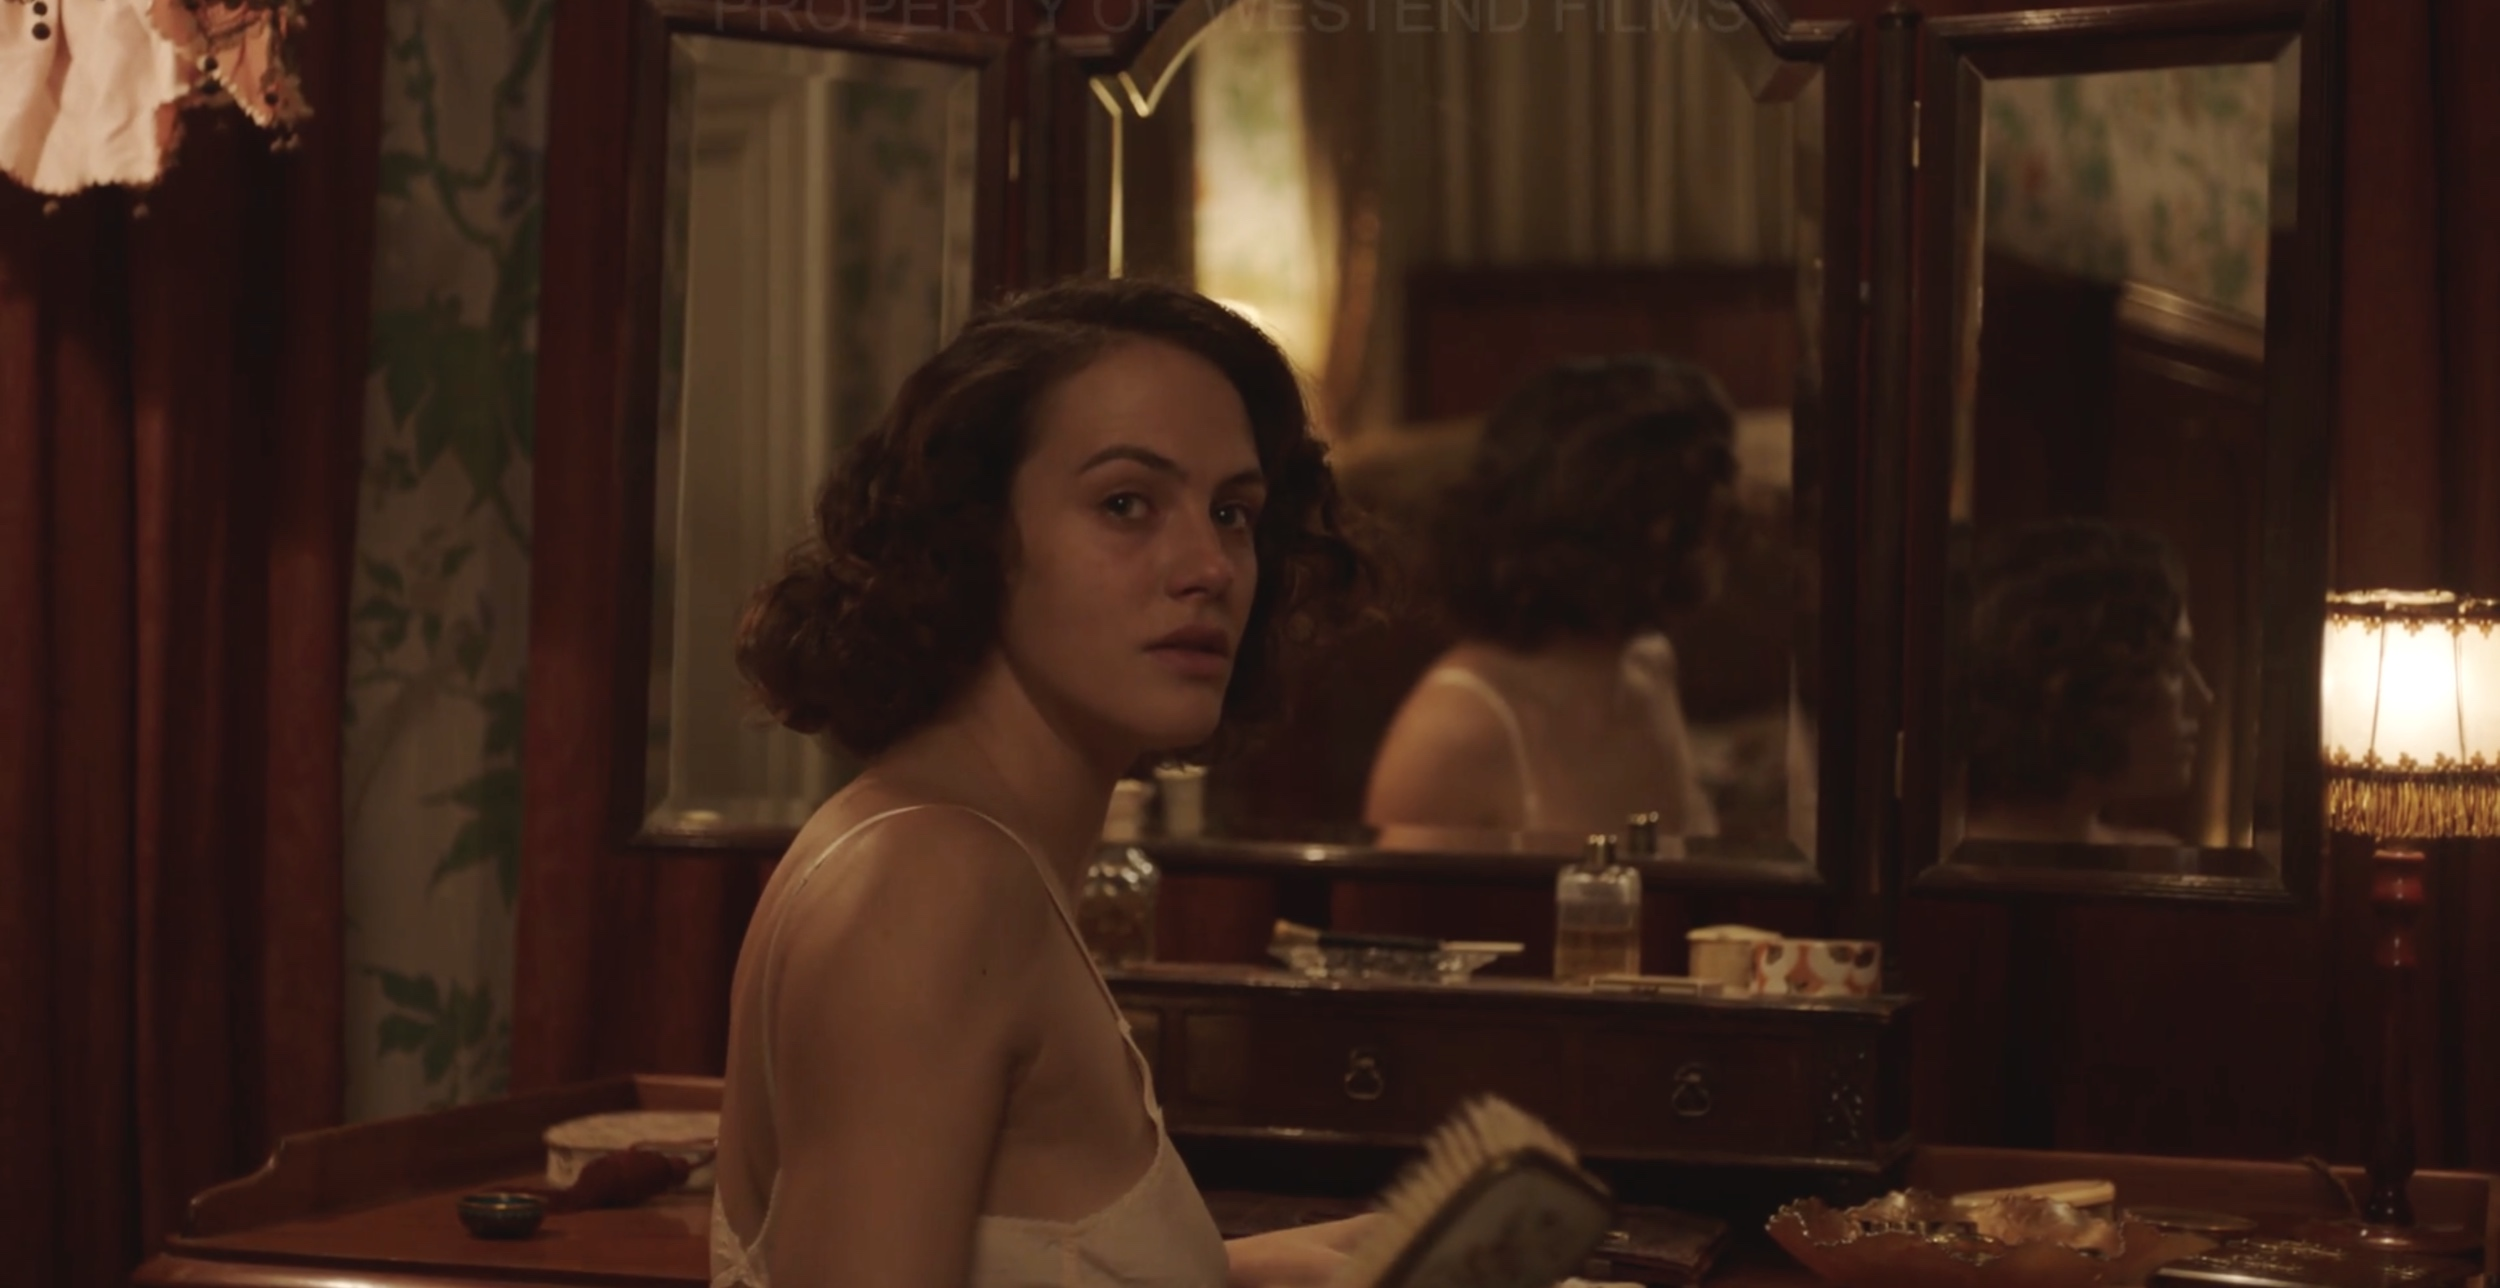 Jessica Brown Findlay plays the wife of the vicar of Borley Rectory in this psychological horror set in the 1930's